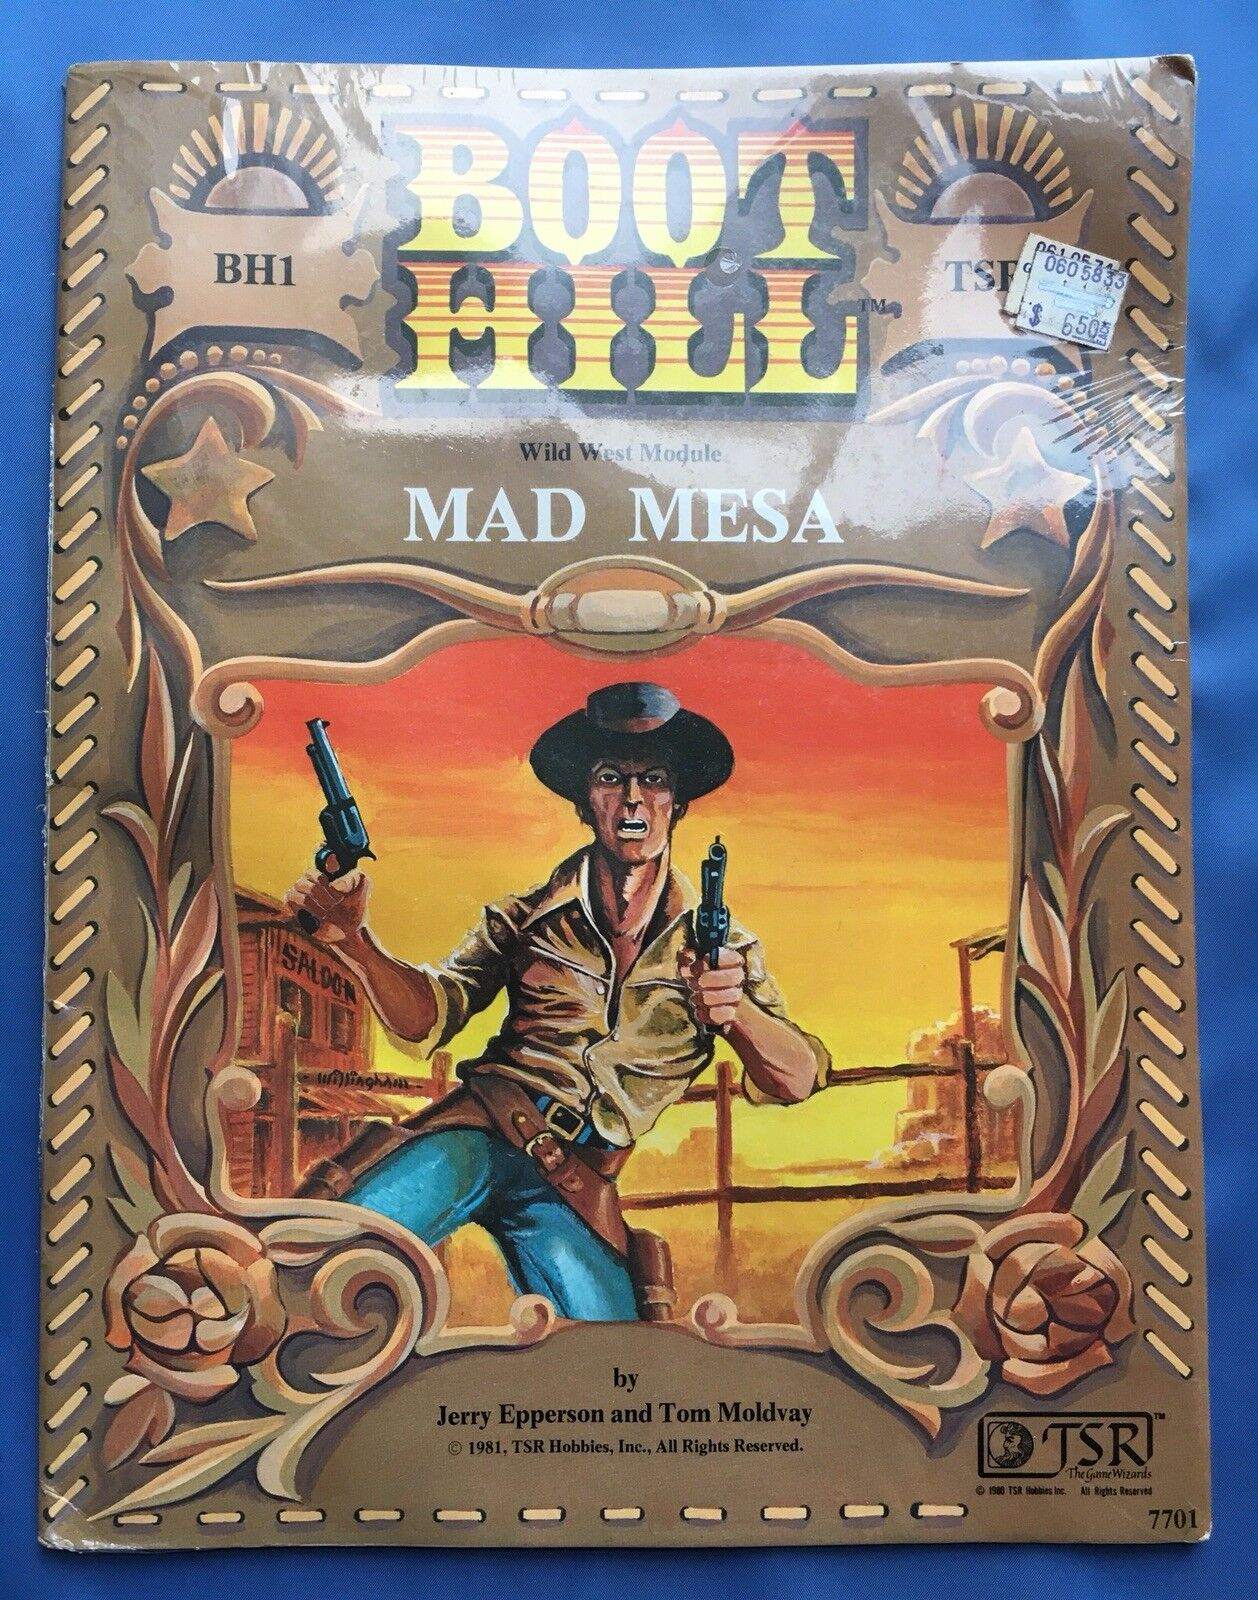 Mad Mesa - Boot Hill Wild West Module BH1 cowboy roleplaying RPG TSR BH1